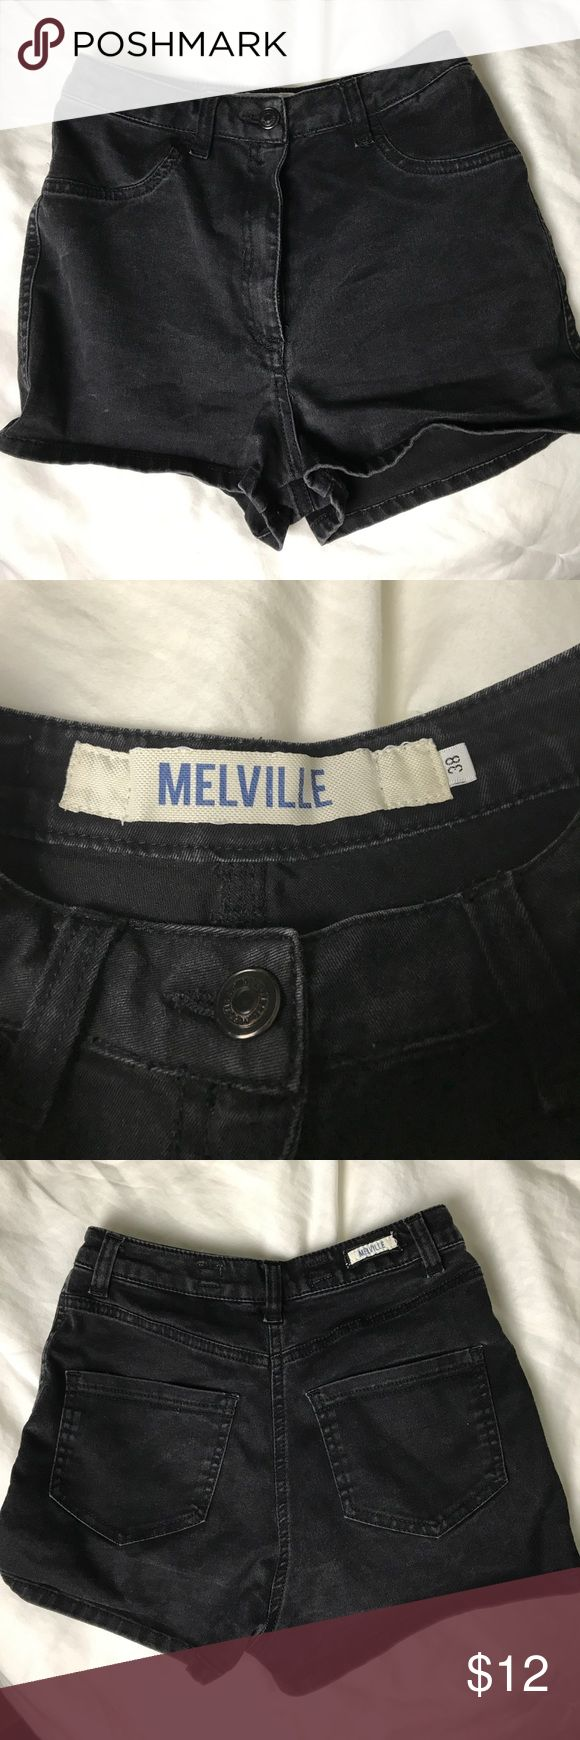 Brandy Melville Black High Waisted Shorts Black high waisted shorts from Brandy Melville, no signs of tearing, soft denim Brandy Melville Shorts Jean Shorts